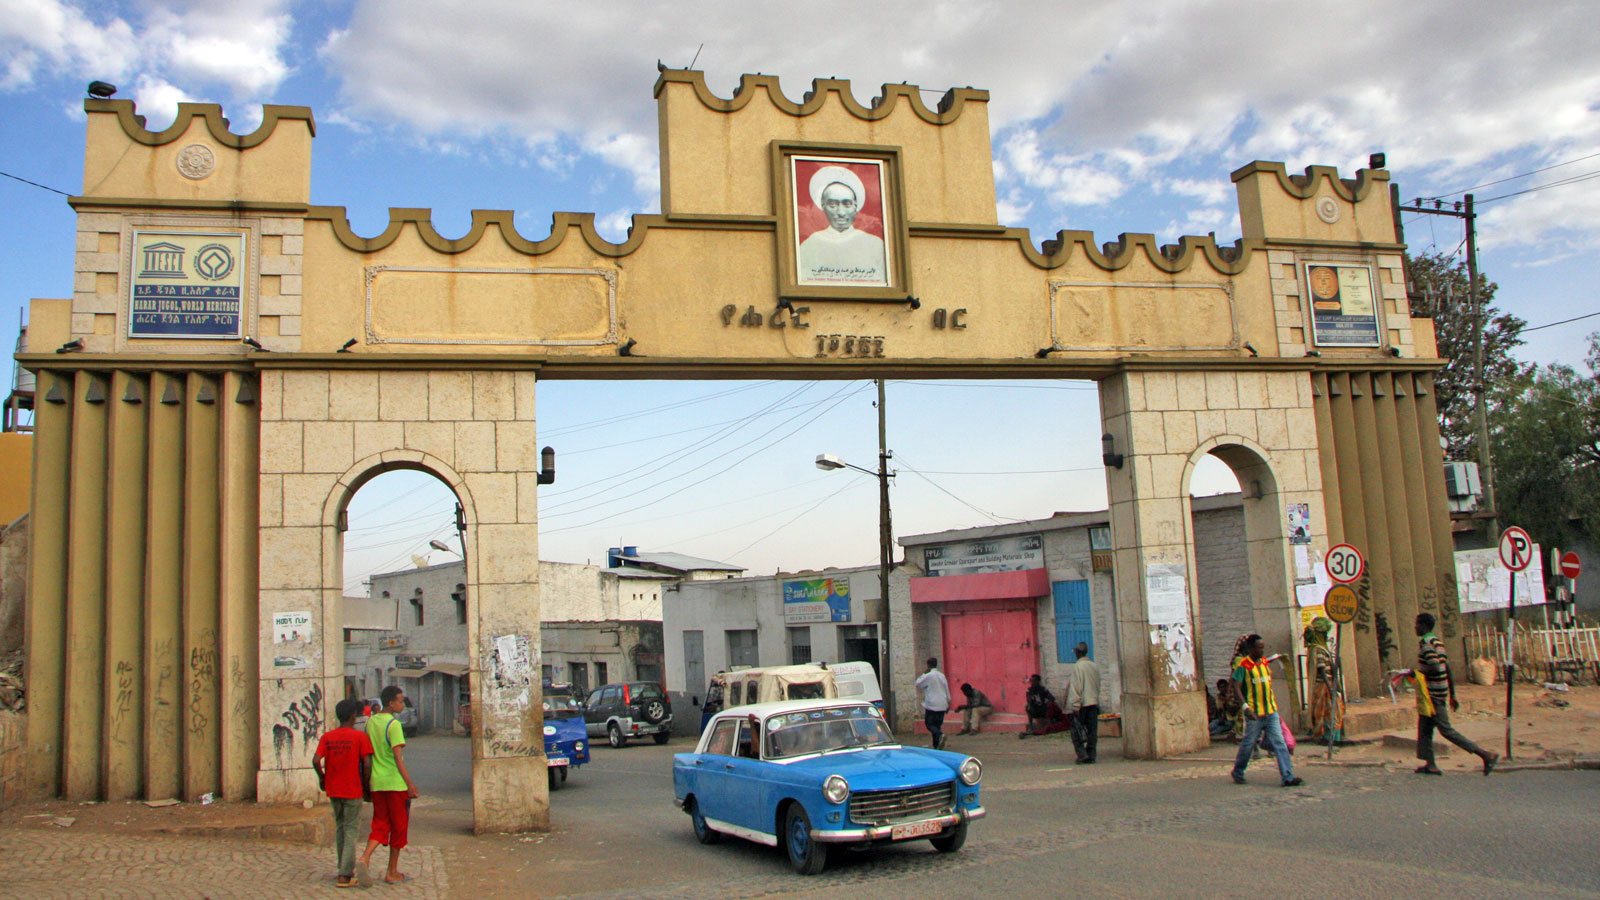 Harar: Inside Ethiopia's timeless city of mosques | CNN Travel